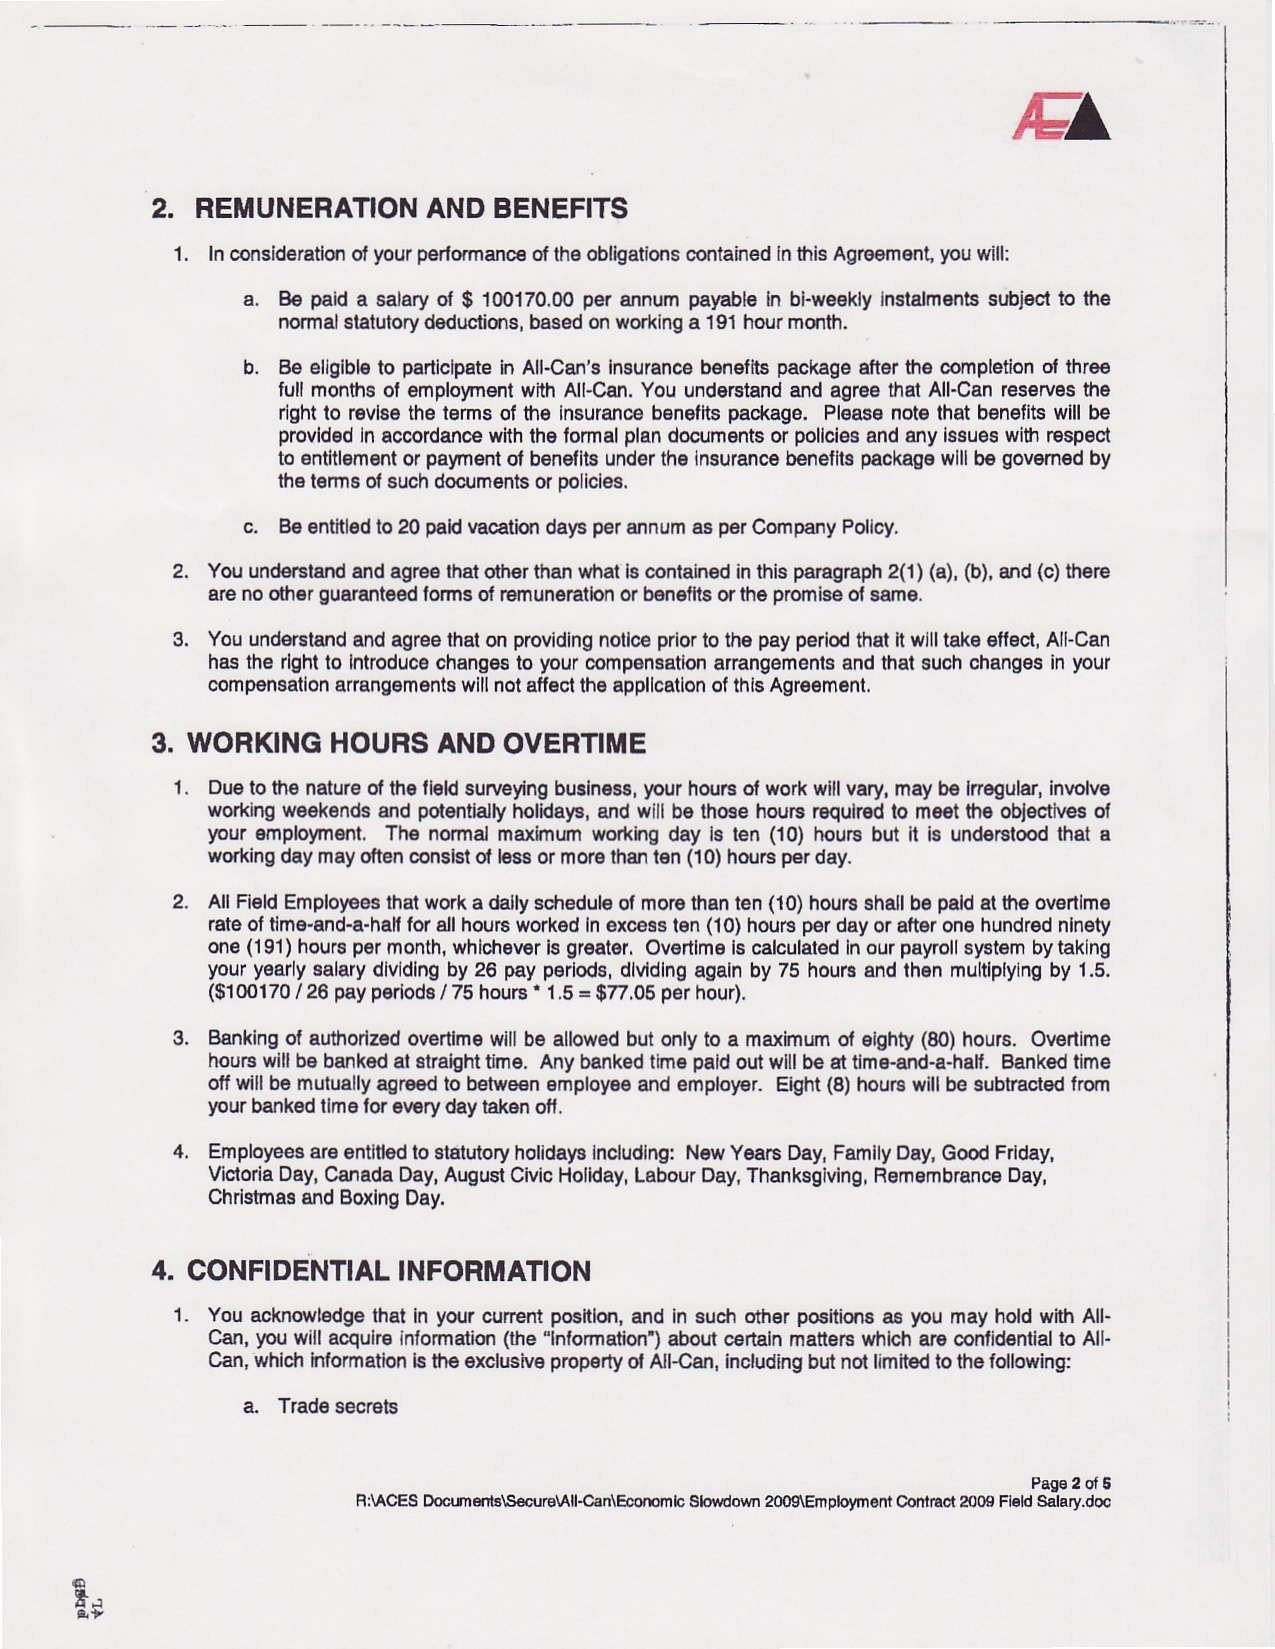 i signed an employment agreement in 2009 i would like you to read it if i can send it to you